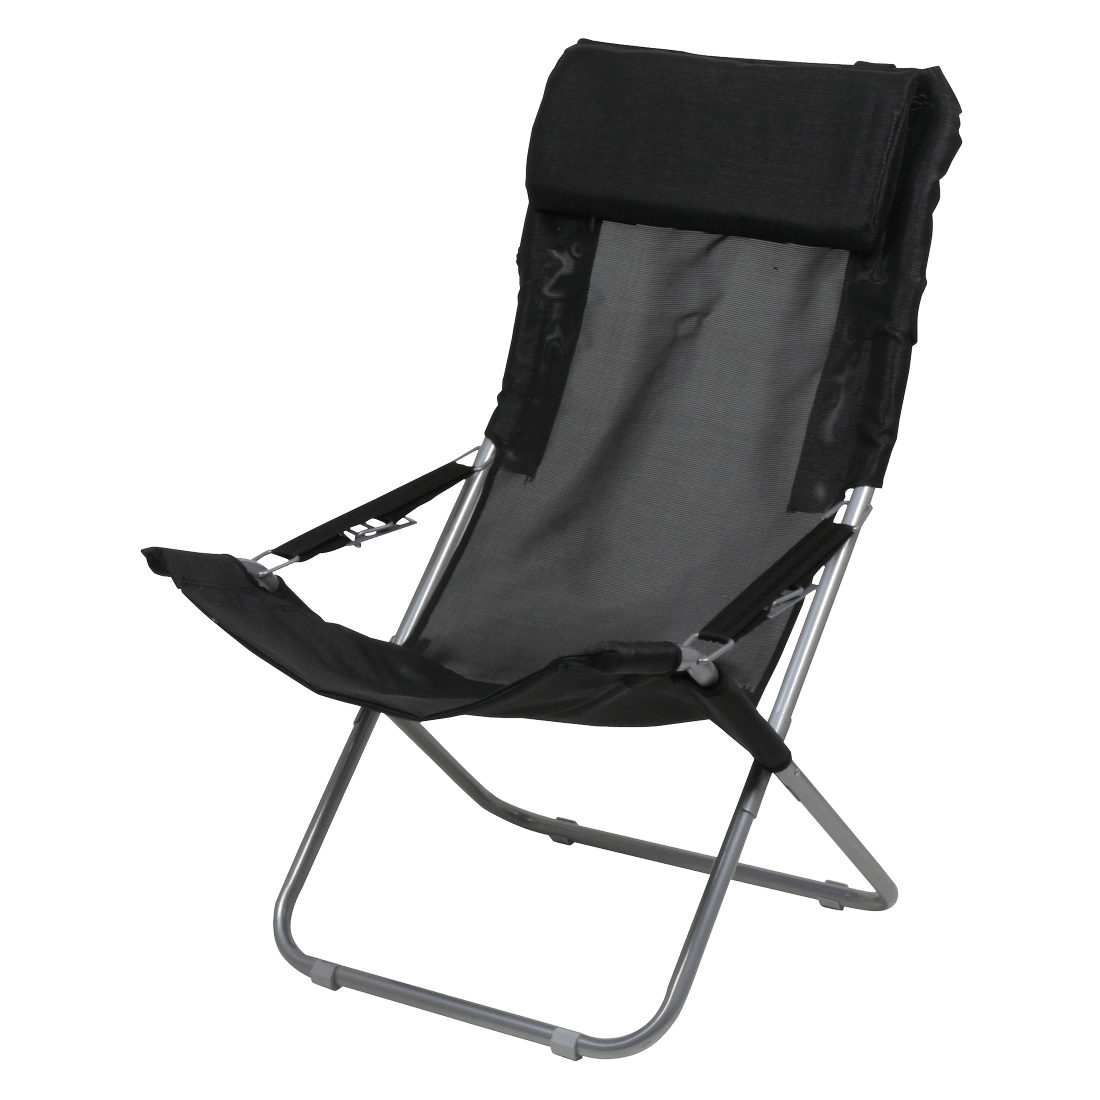 Folding Camping High Chair 10t Maxi Chair Camping Chair Relax High Back With Head